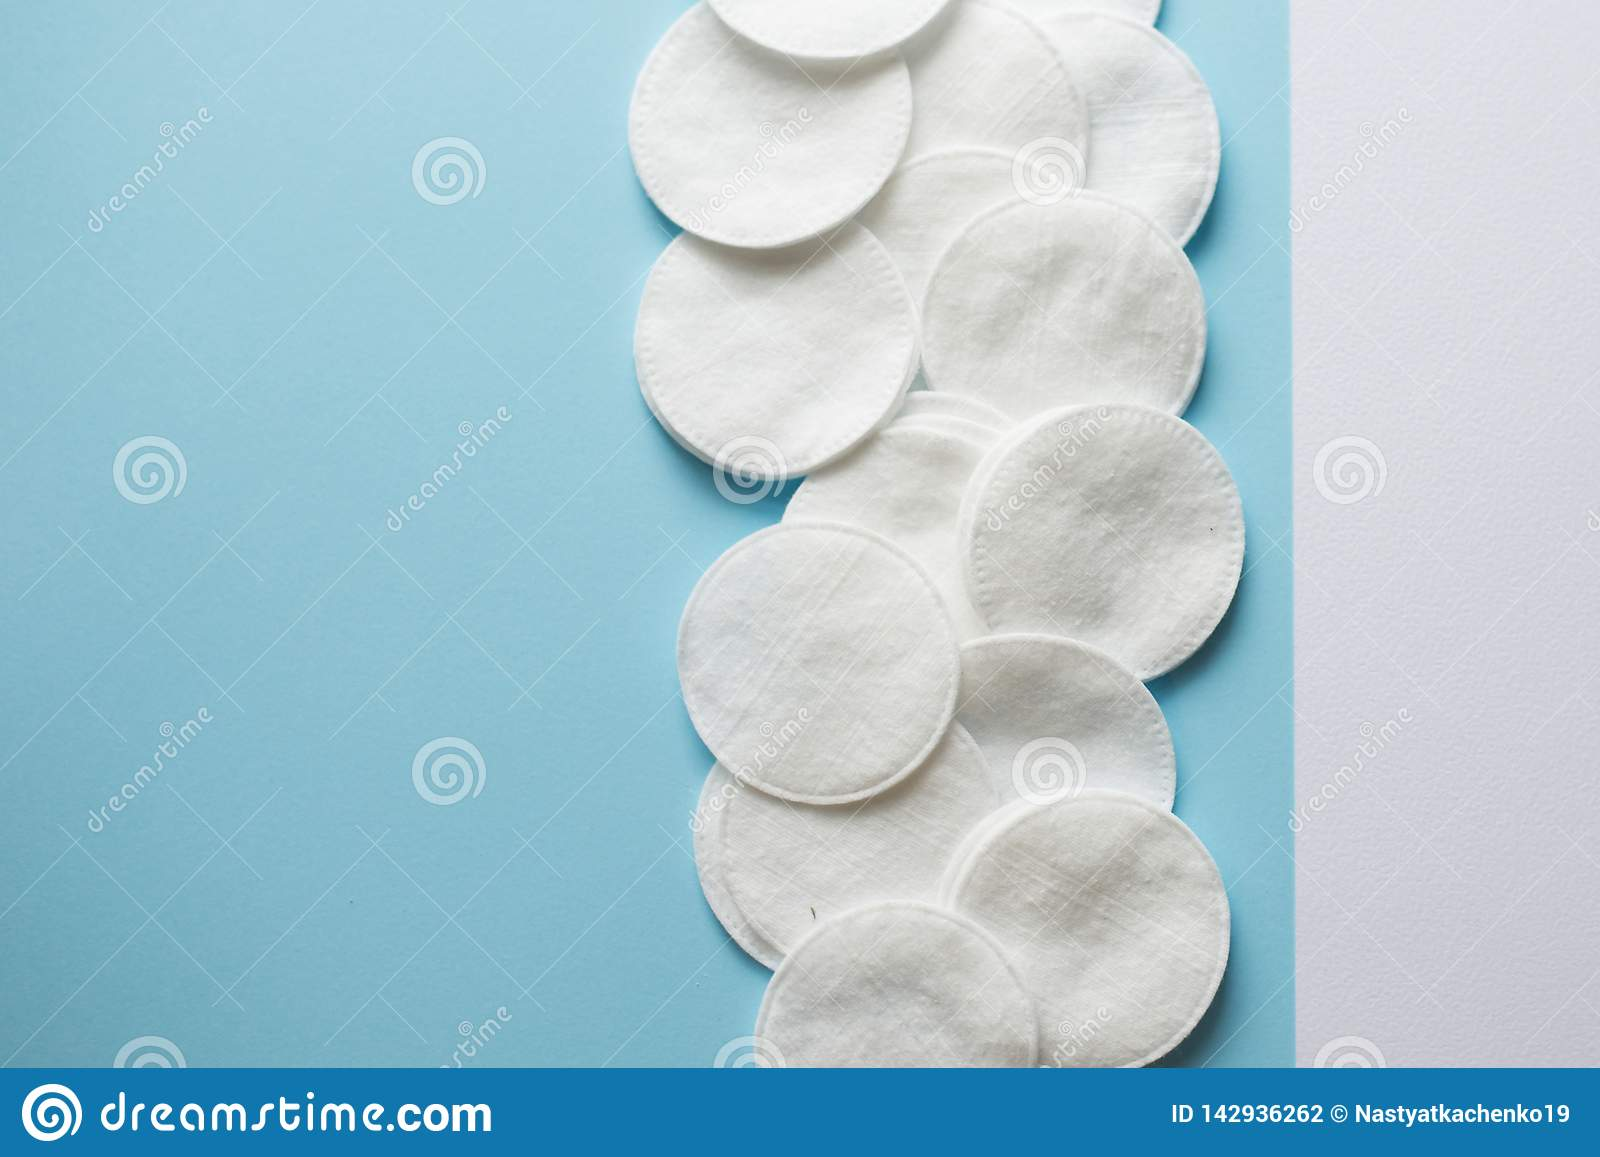 Cotton pads on blue background flat lay.Close-up on group of cotton pads for make up. copy space